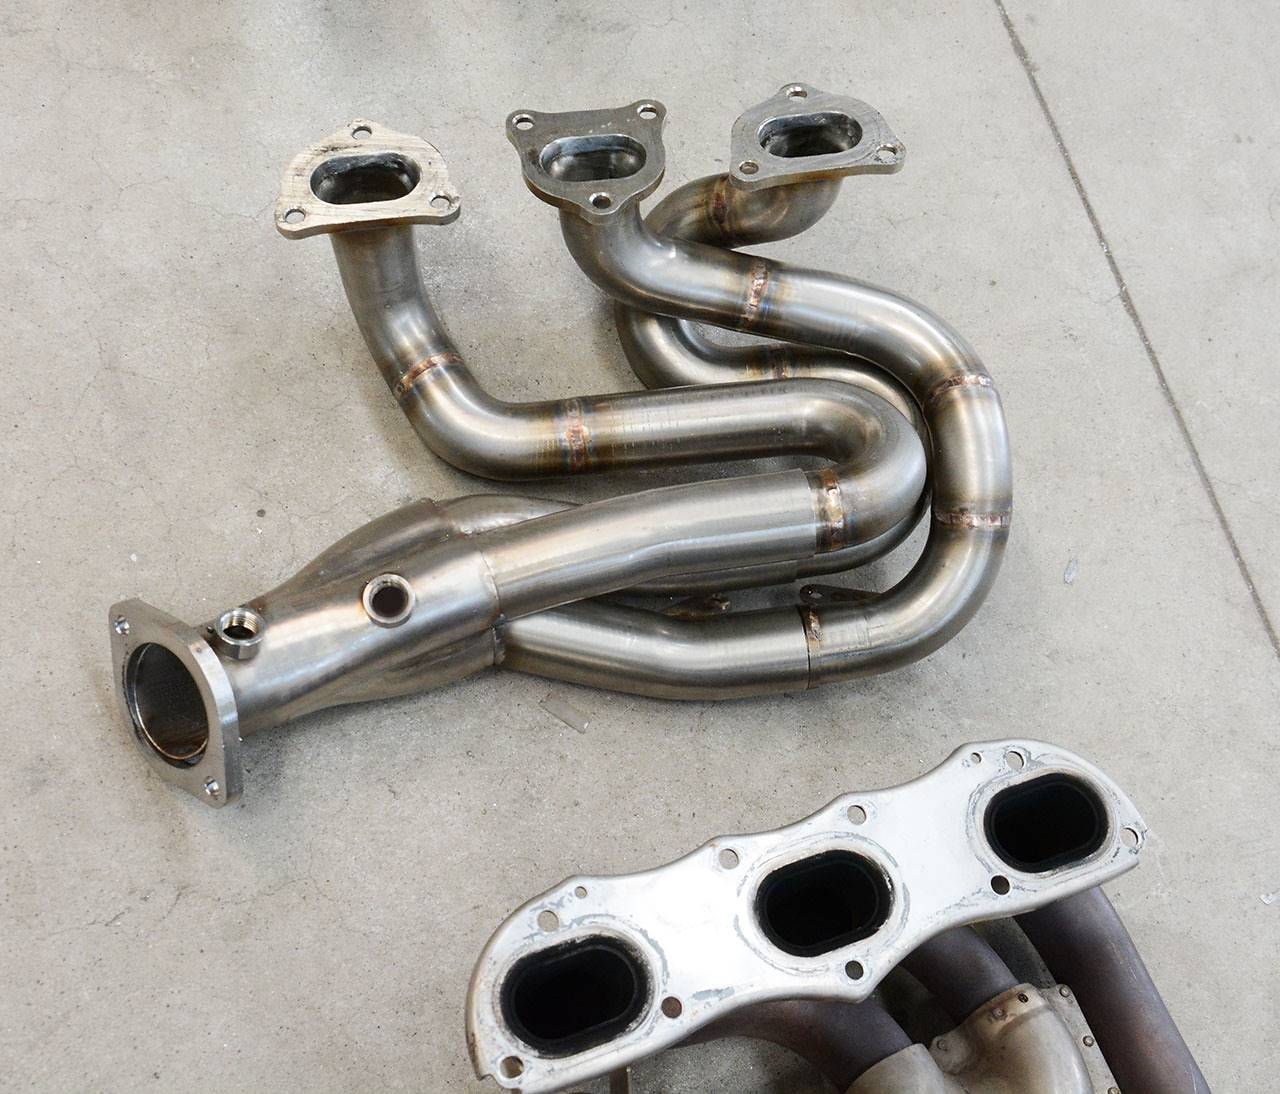 Porsche 981 - Supersprint headers 248001 (prototype not welded)